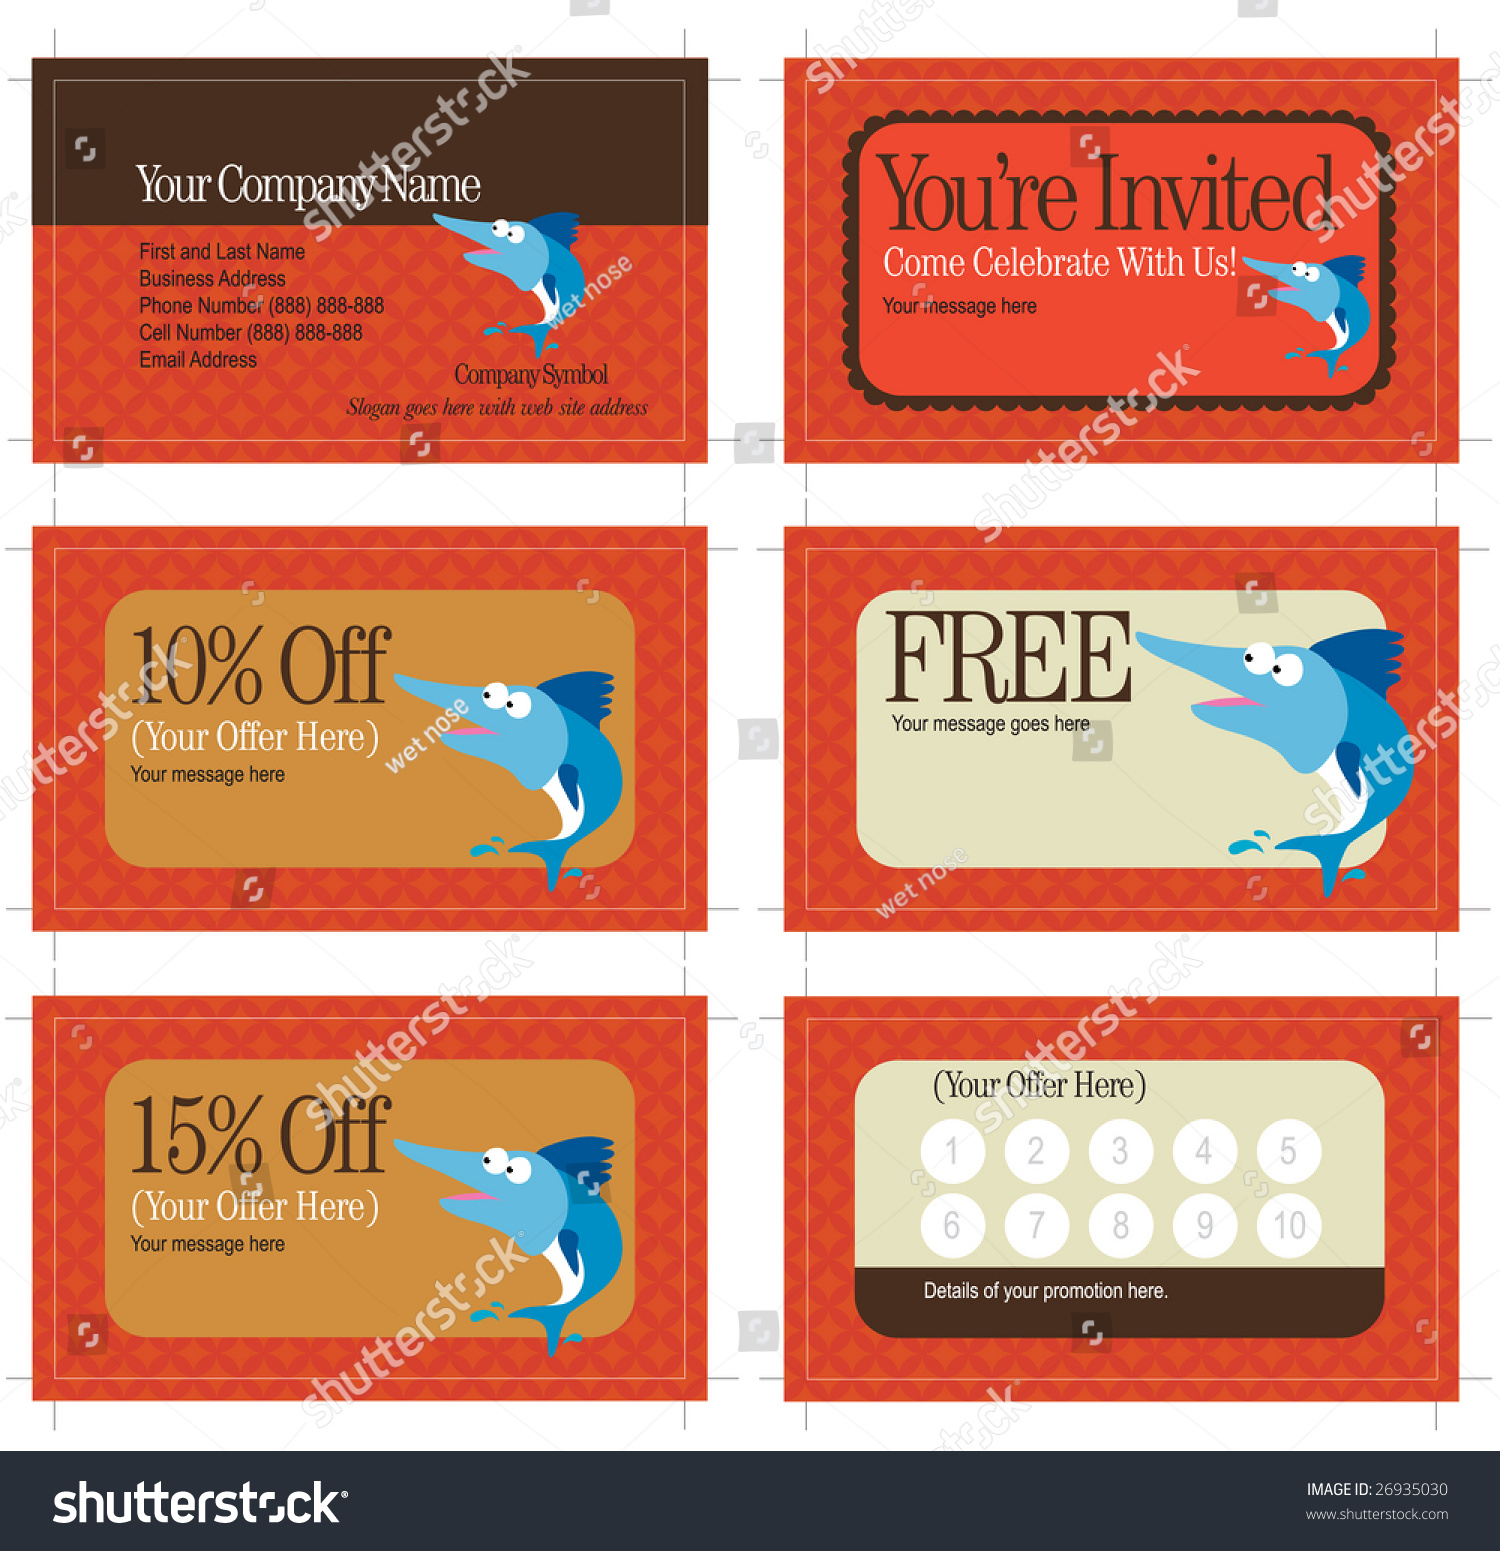 35 X 2 Business Card Promo Cards Includes Stock Vector 26935030 ...